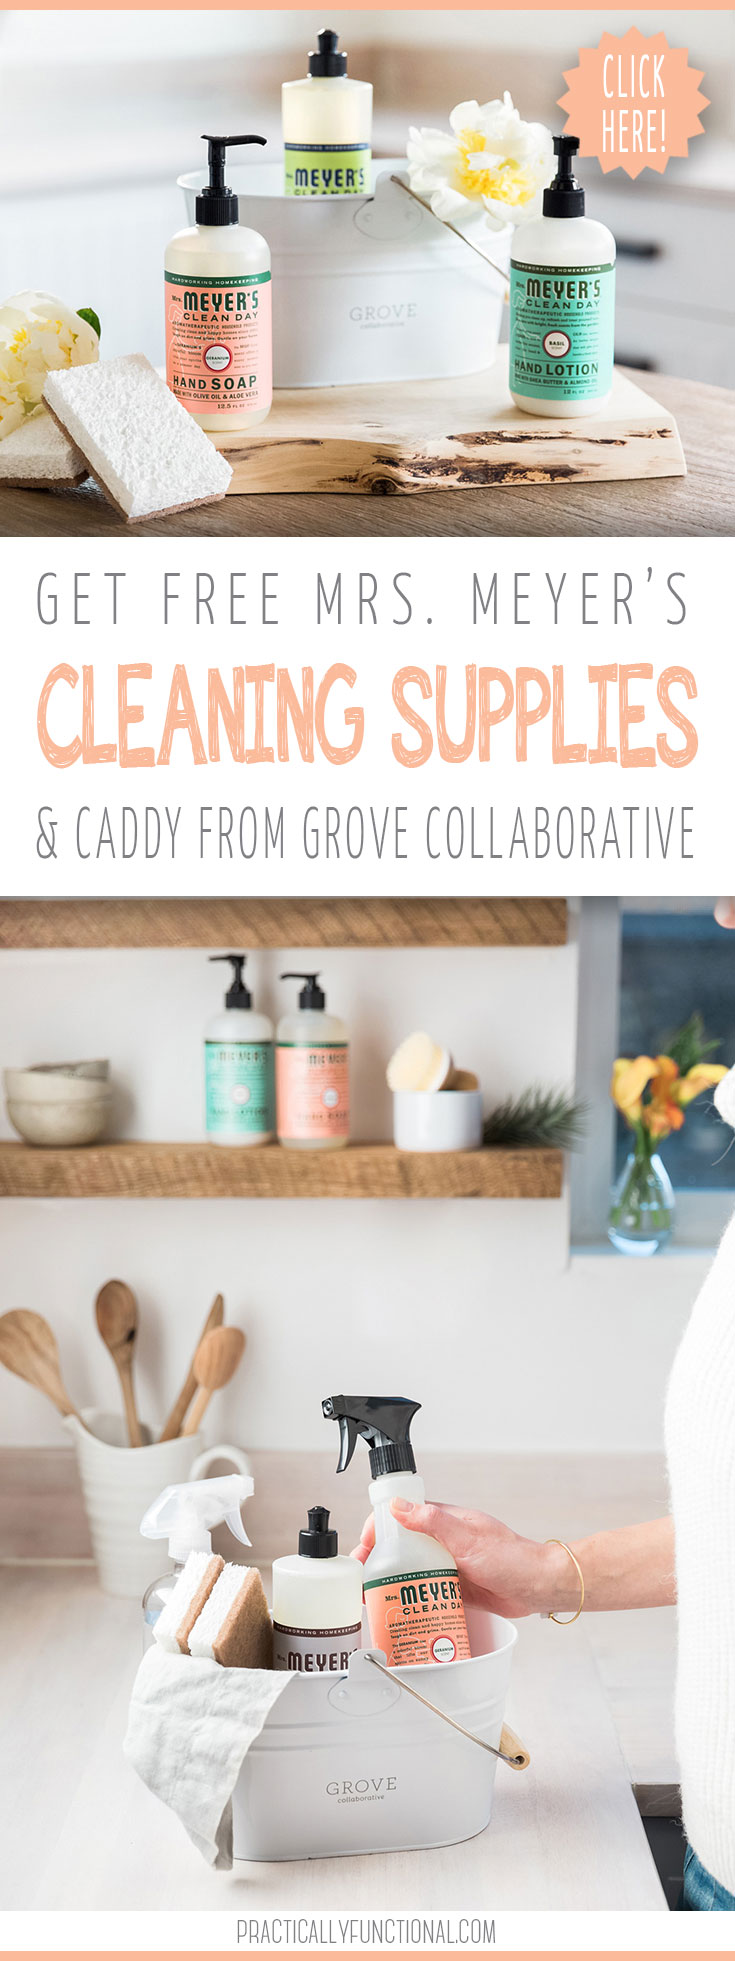 Free Mrs. Meyer's cleaning products and caddy from Grover Collaborative